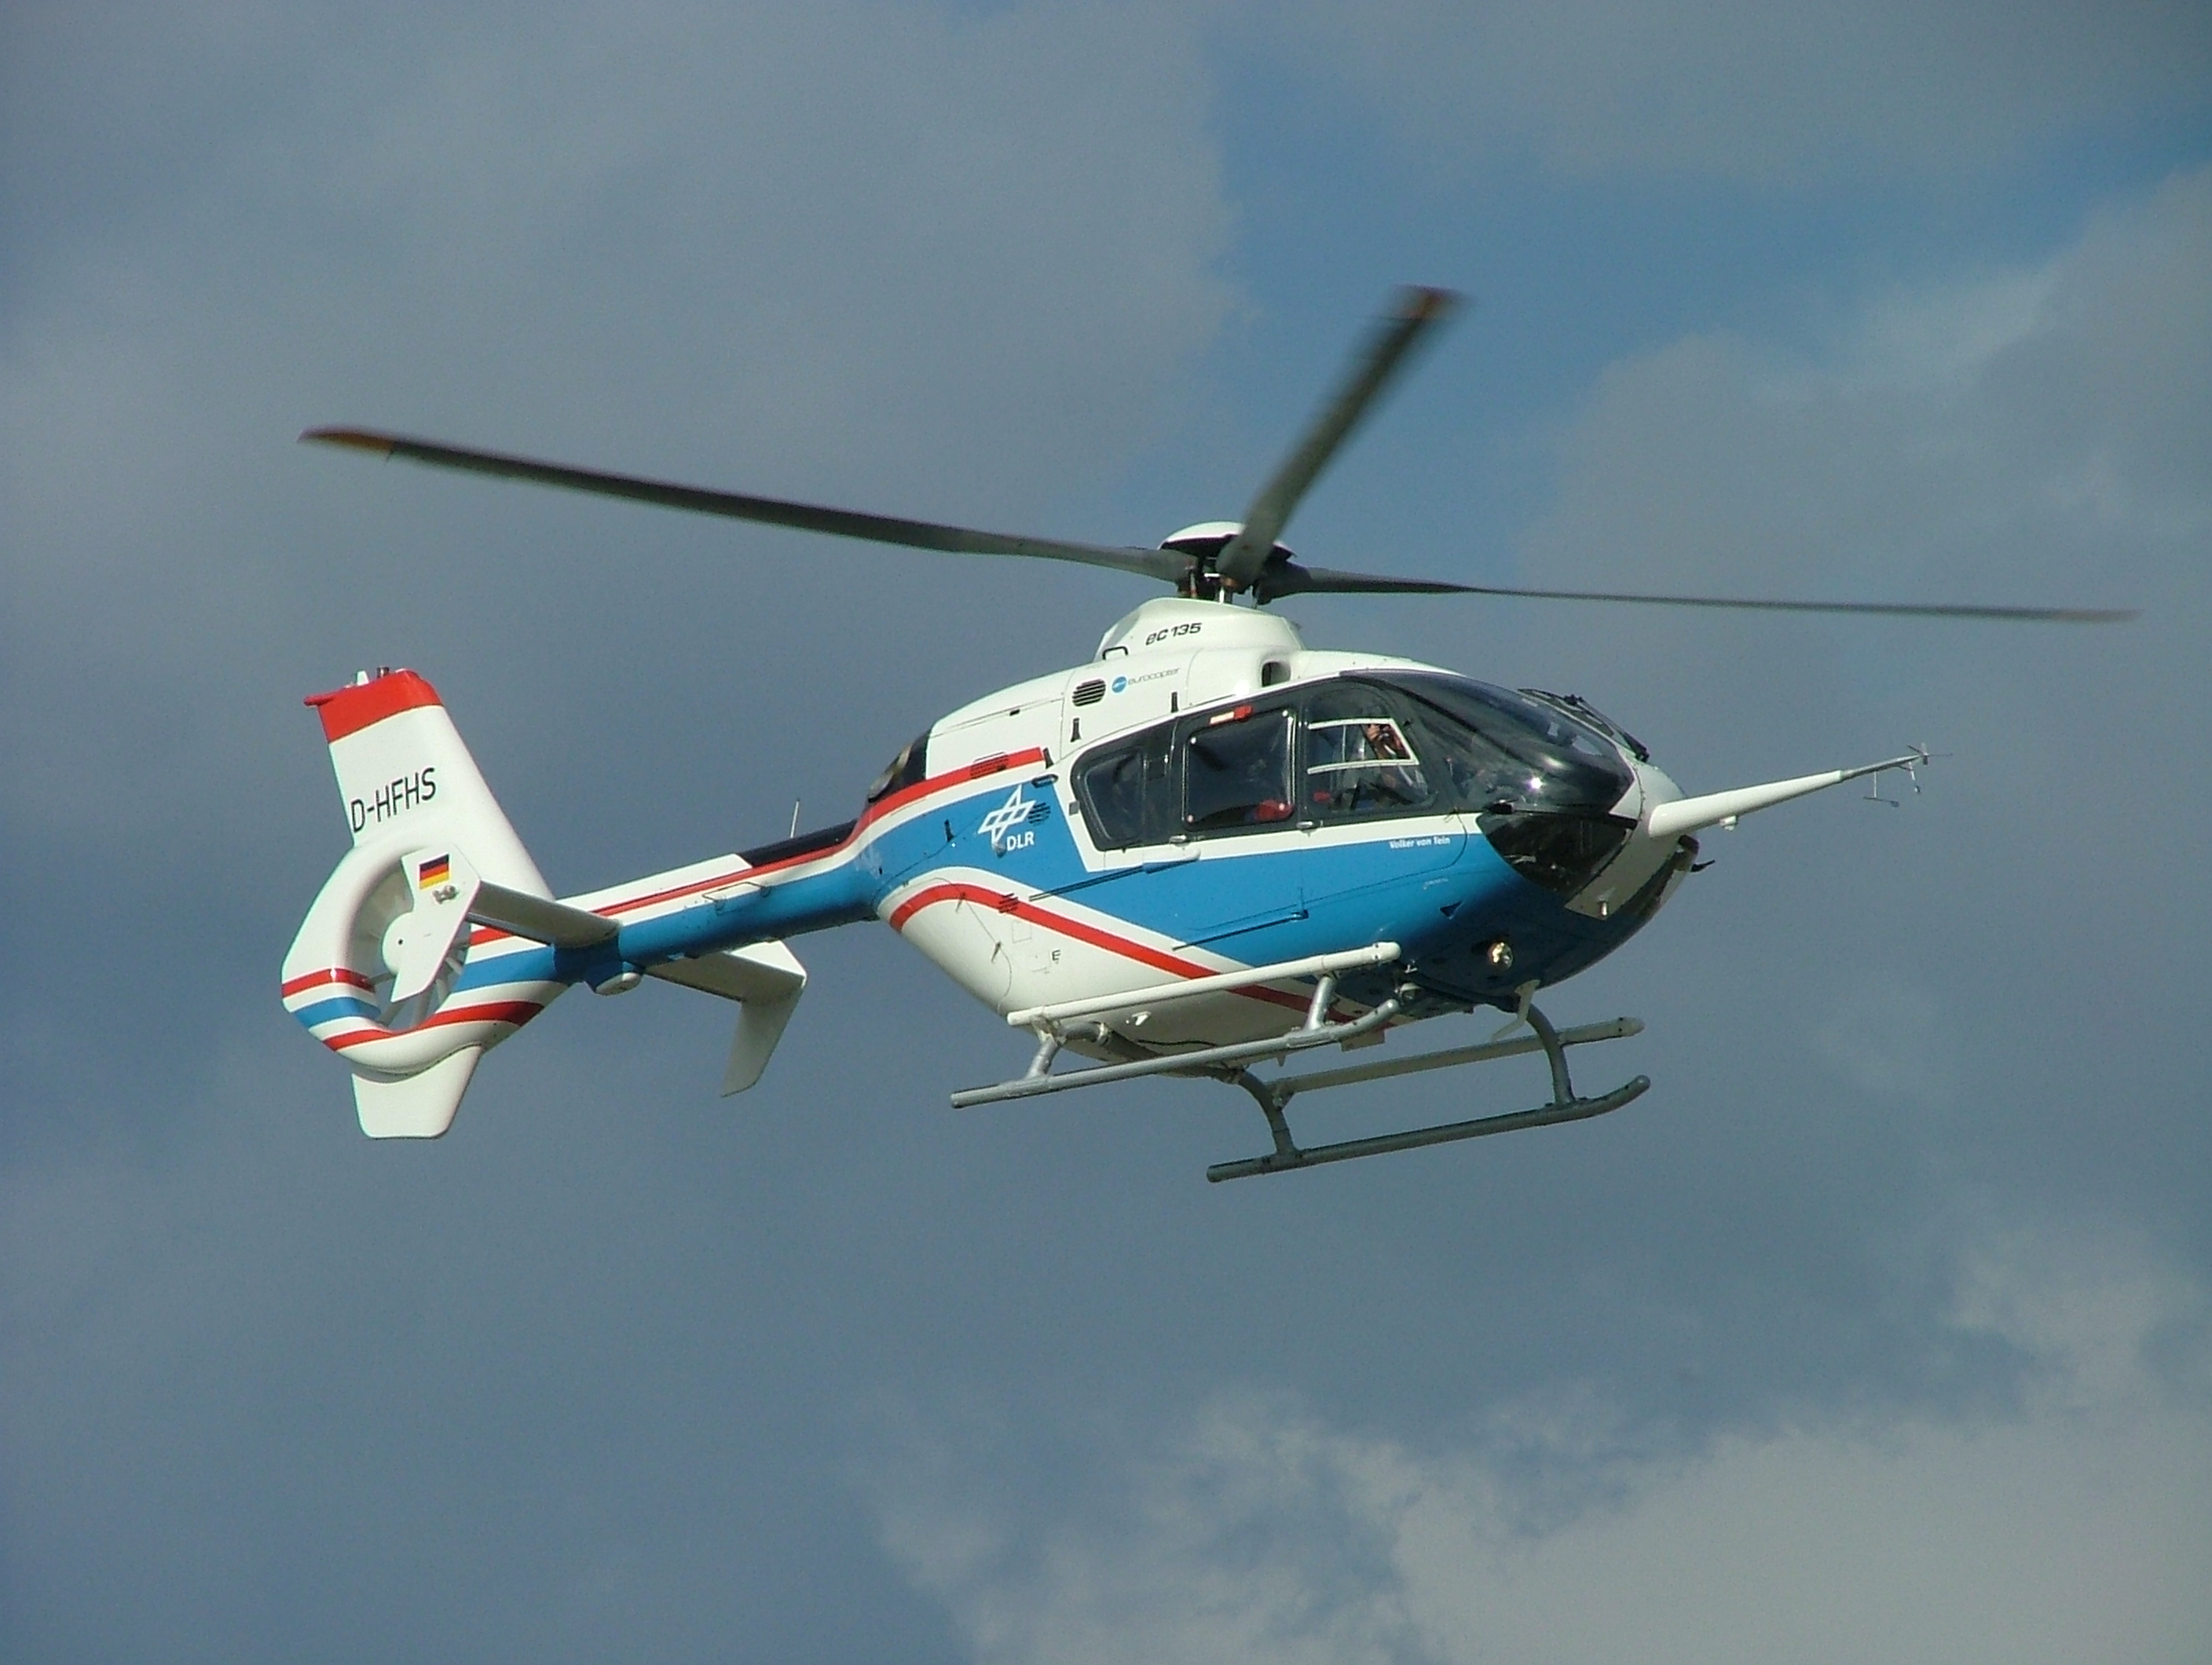 https://upload.wikimedia.org/wikipedia/commons/6/6d/DLR_Helikopter.JPG